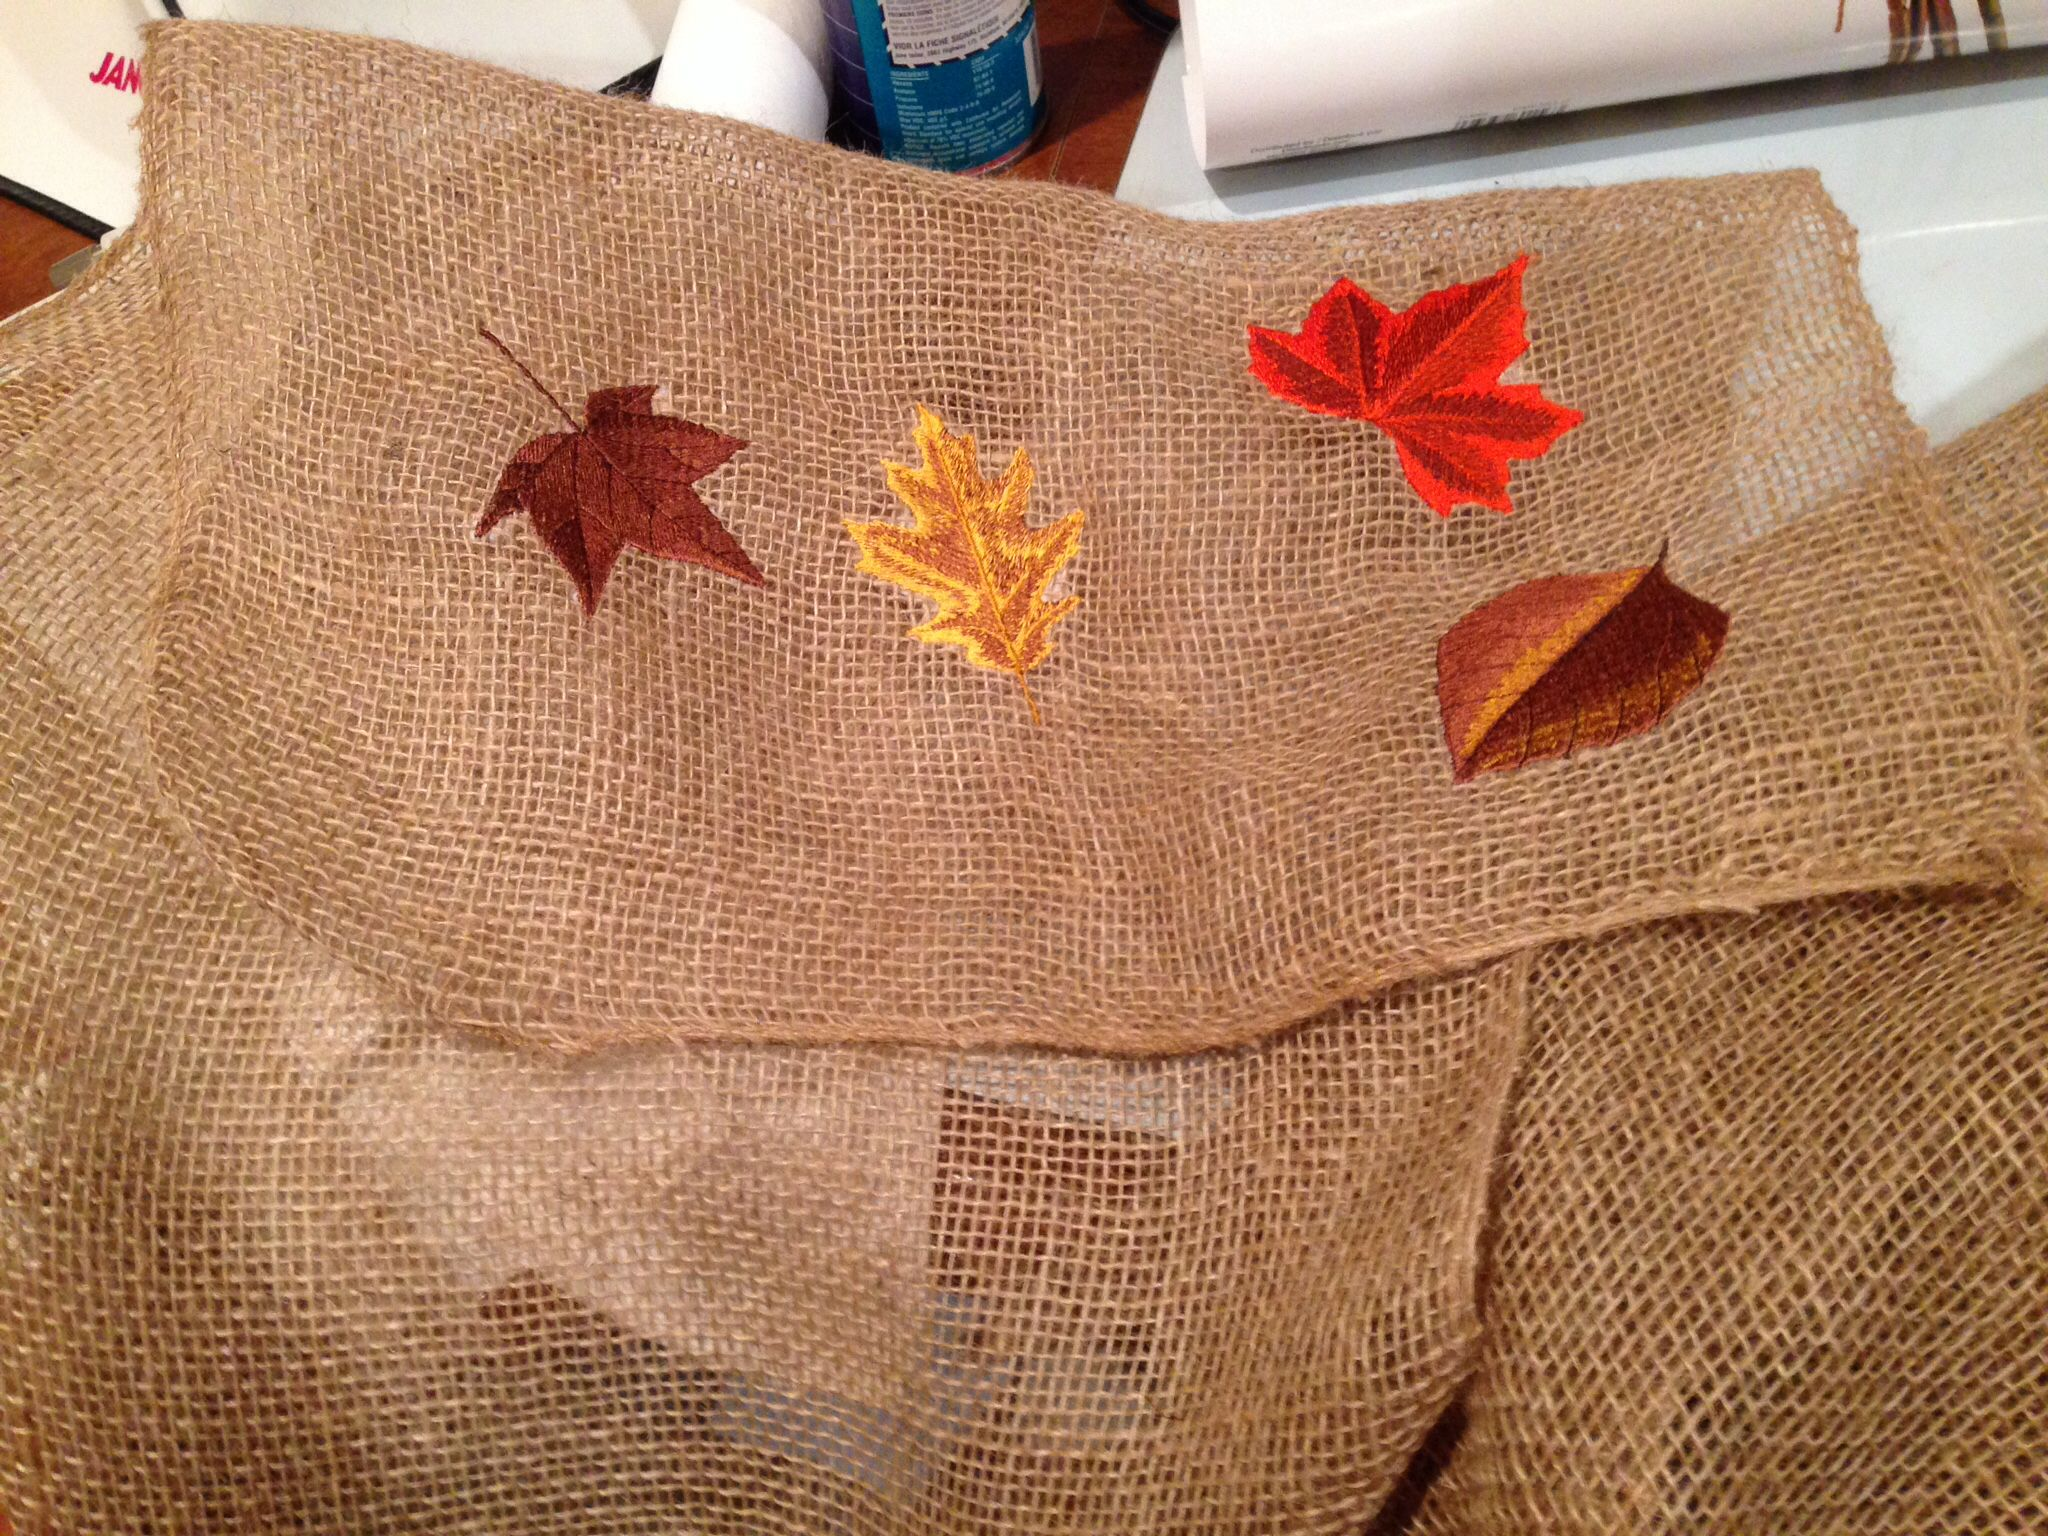 Embroidered table runner from burlap